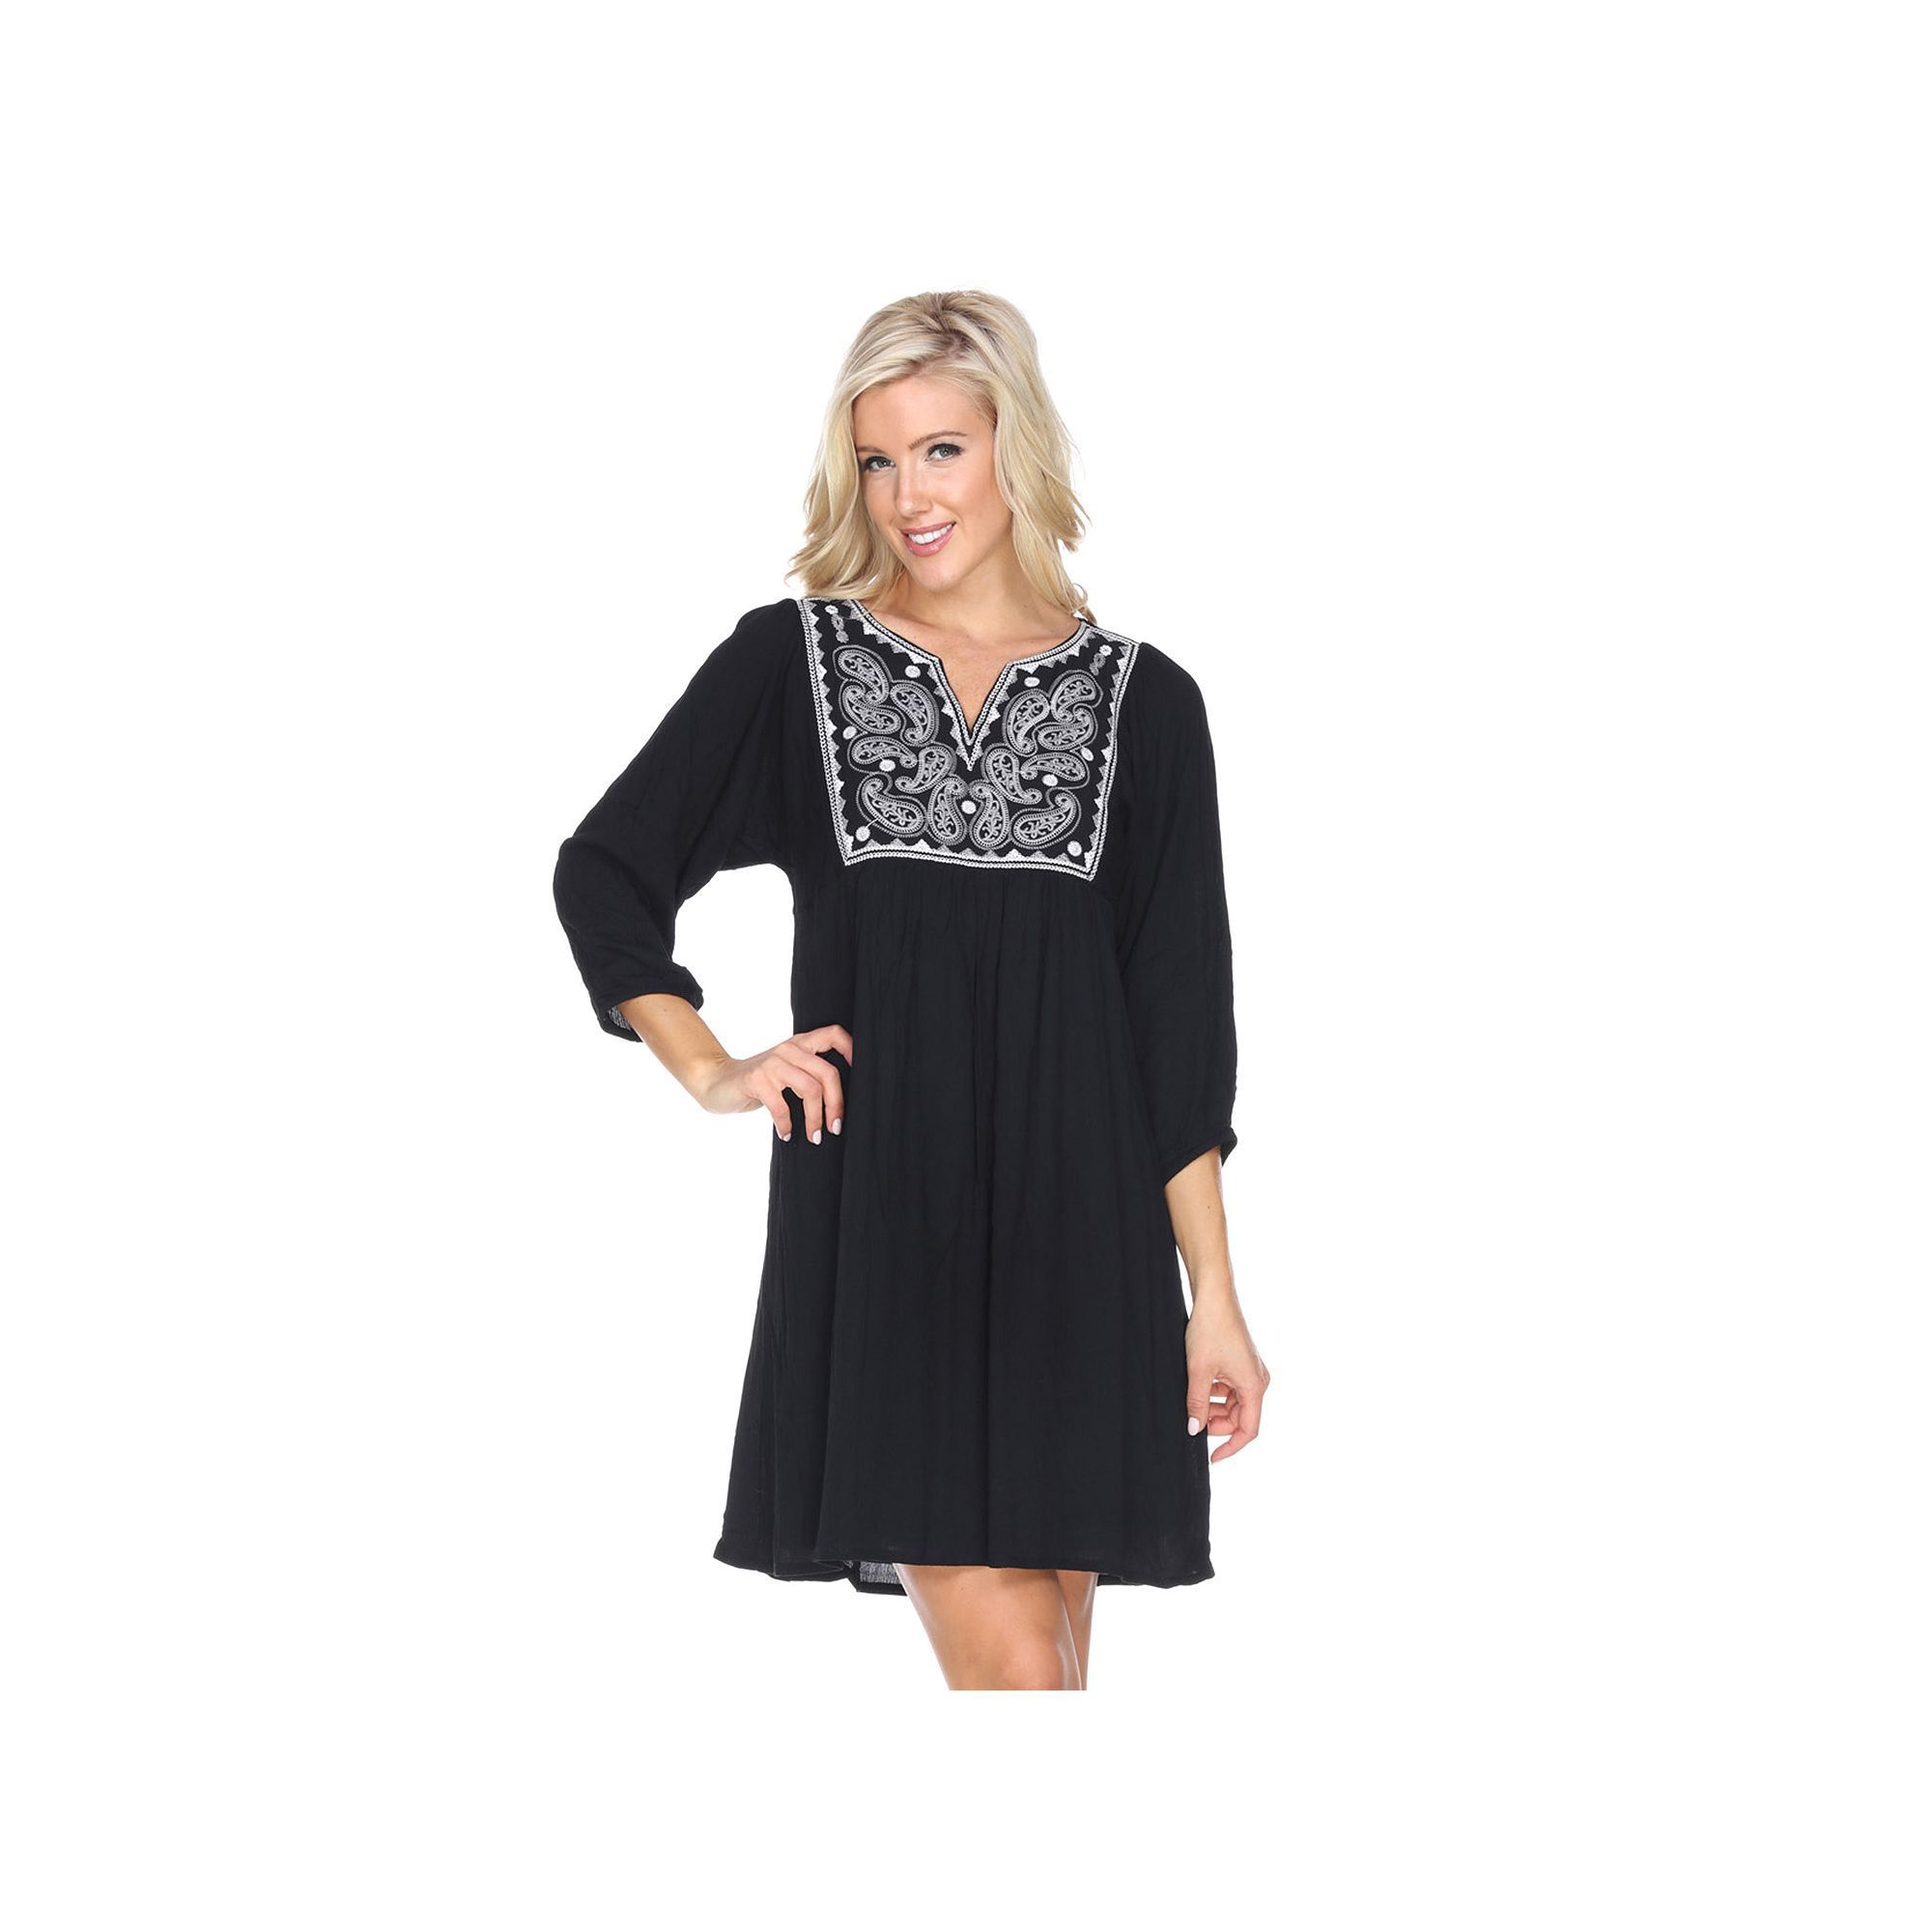 Black babydoll dress with white collar